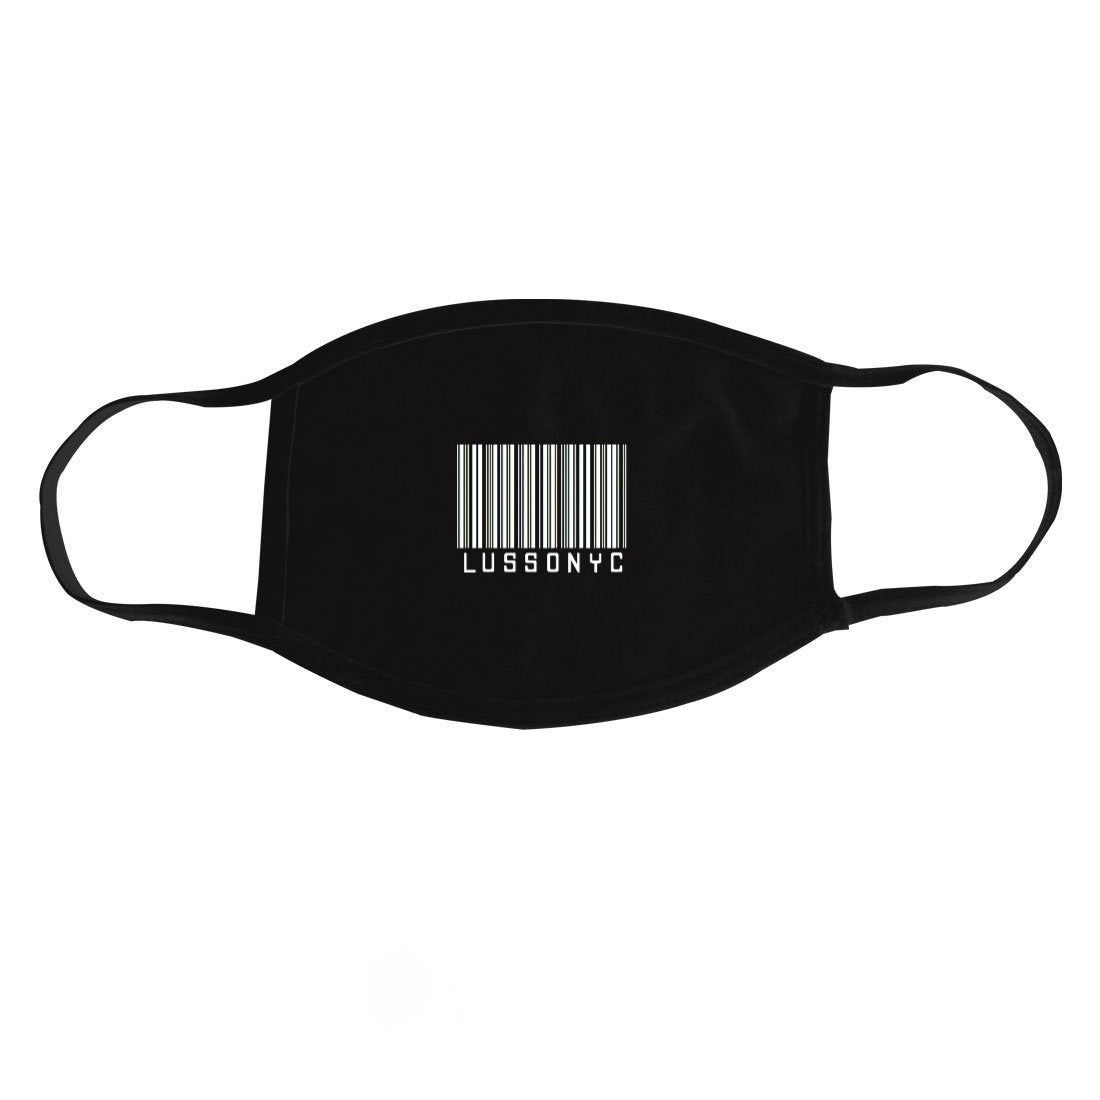 LUSSONYC BARCODE FACE MASK (NERO)